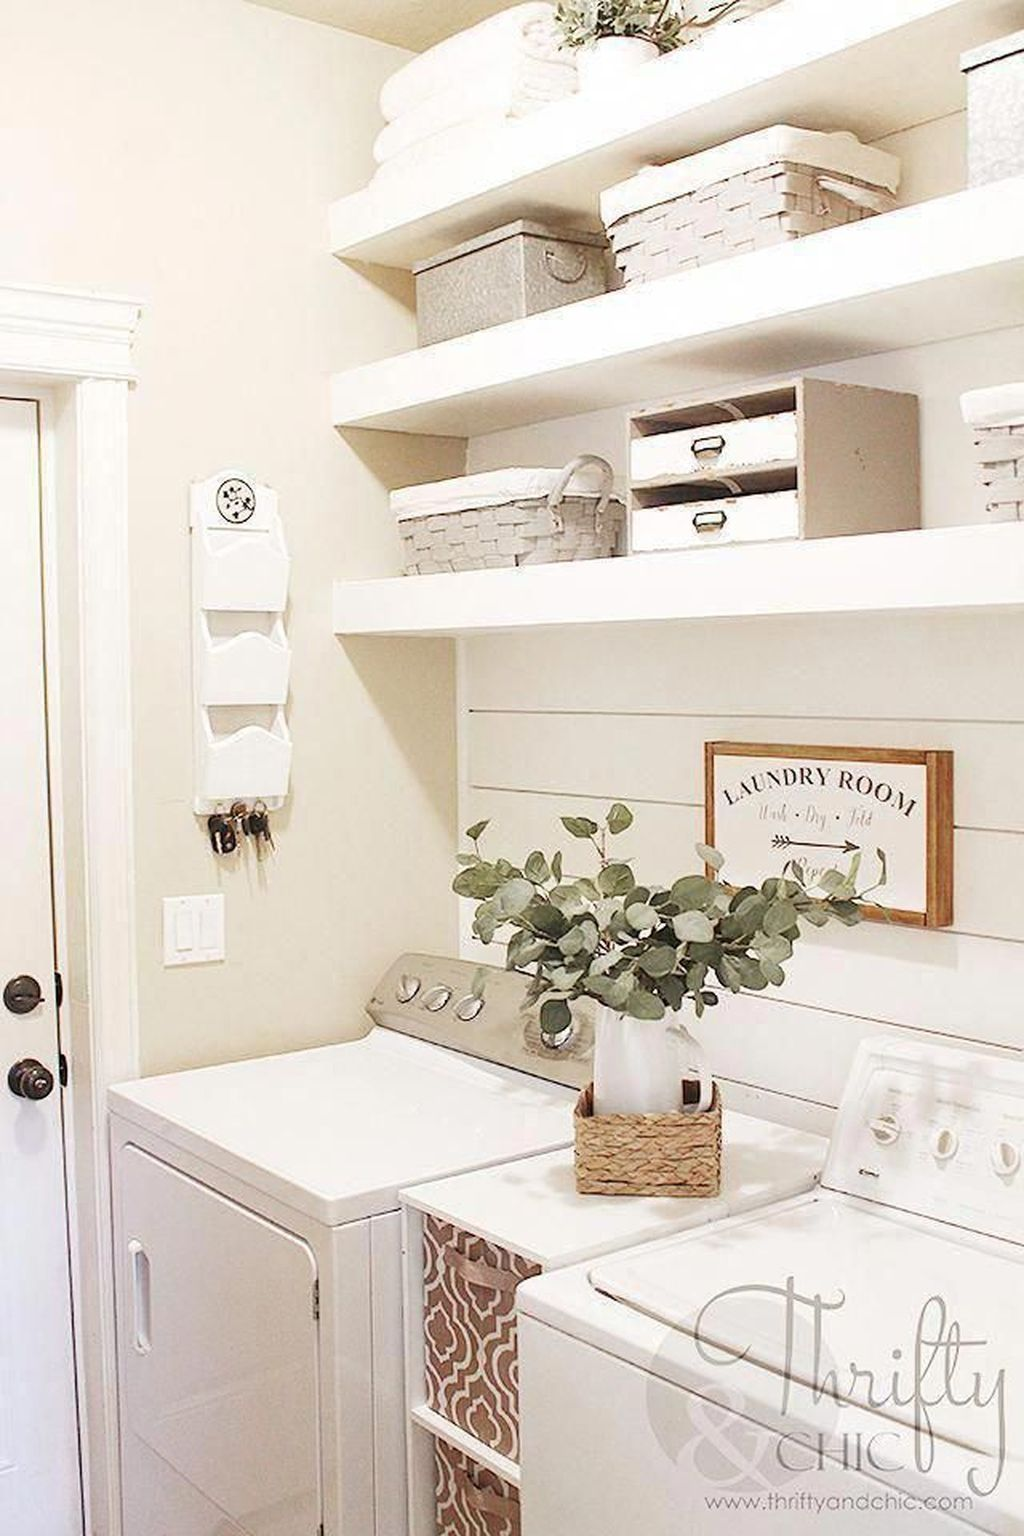 39 Perfect Laundry Room Designs Ideas For Small Space Lavanderia